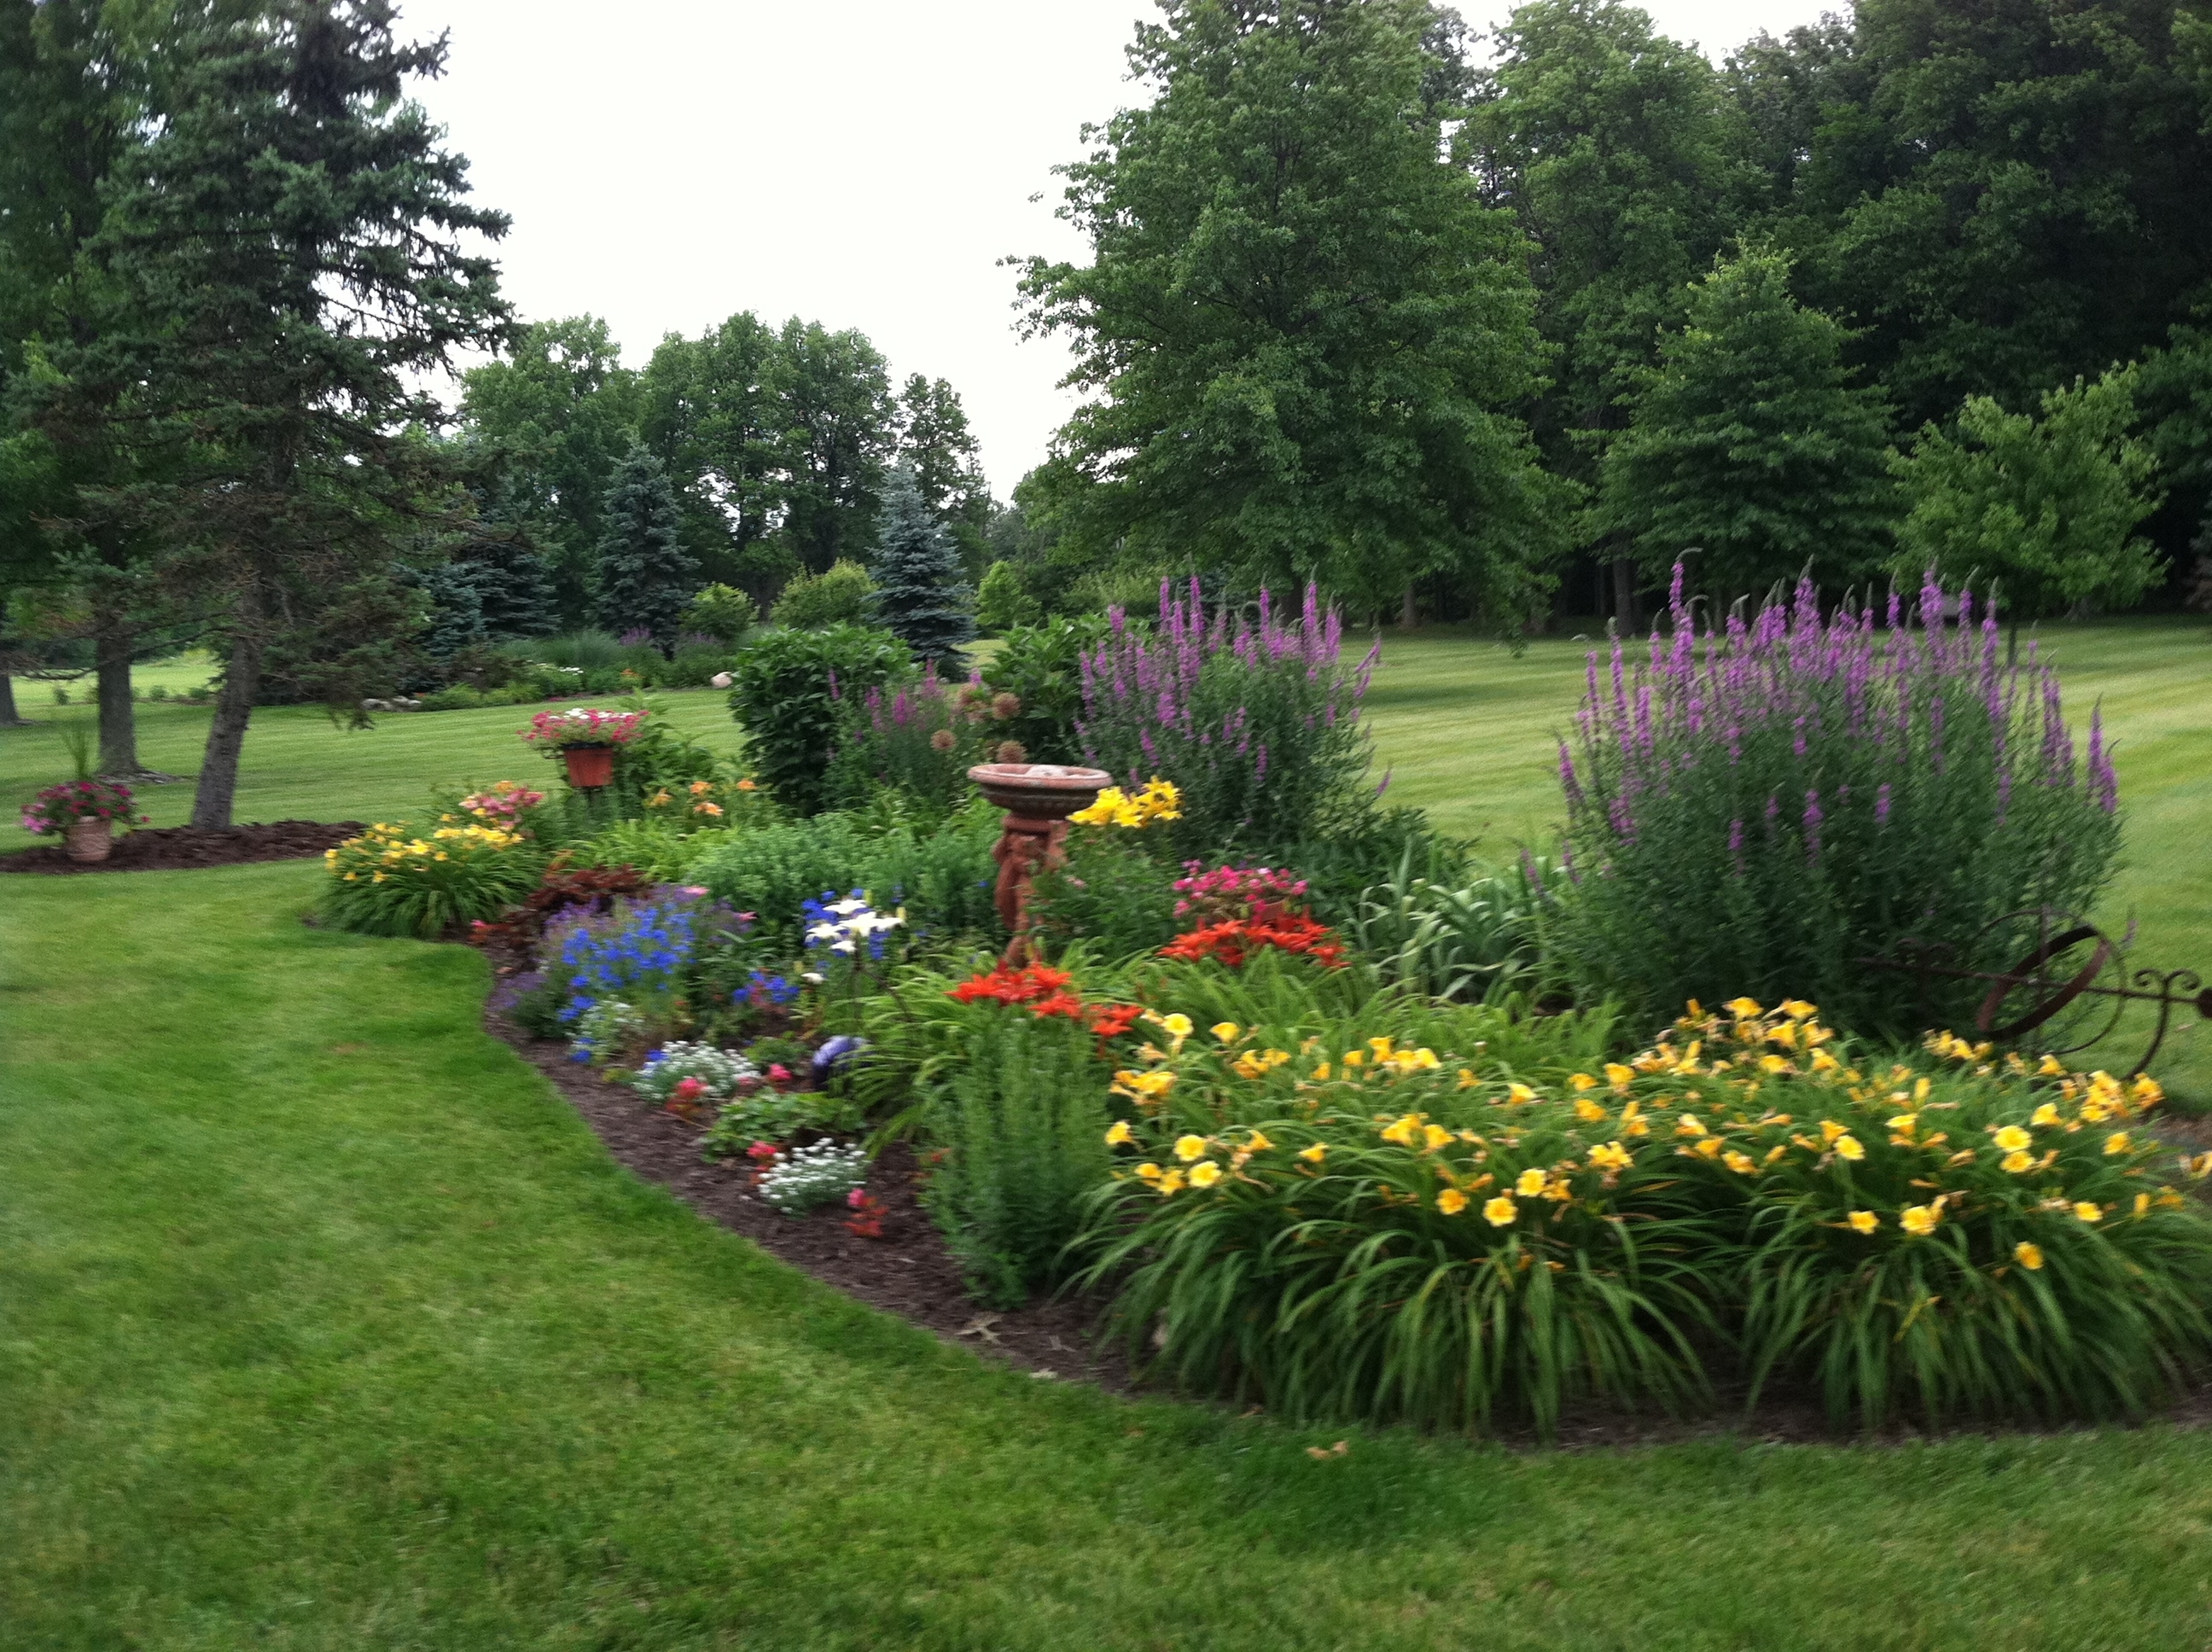 Image of: 12 Ways To Make Your Yard Look Professionally Landscaped Yards Pertaining To Landscaped Yards Decorative Ideas Landscaped Yards